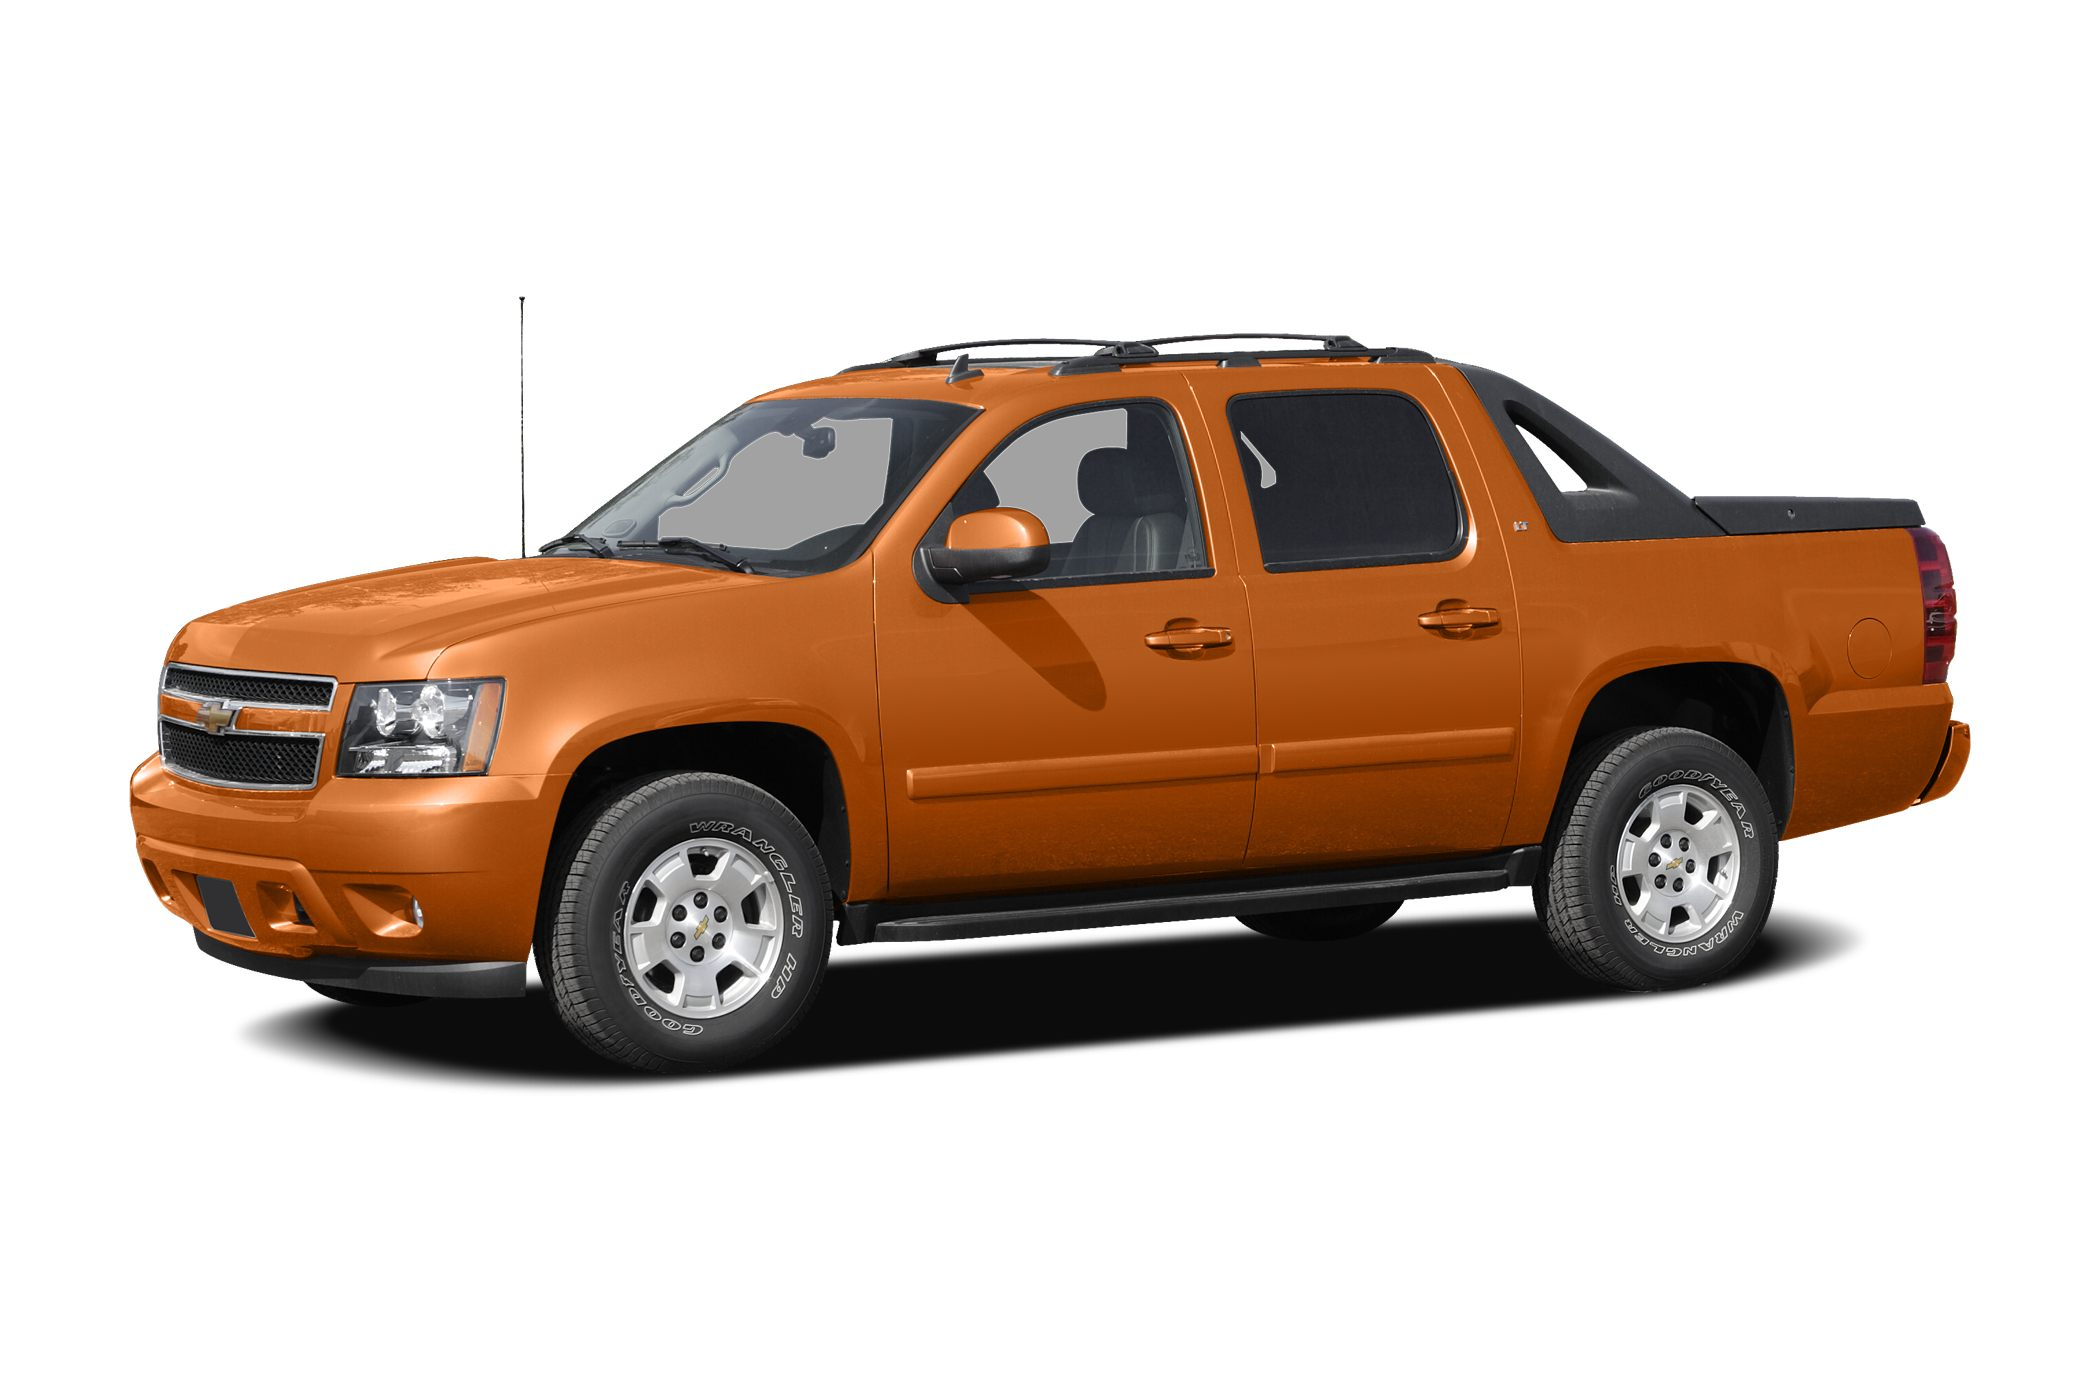 2007 Chevrolet Avalanche 1500 LS Crew Cab Pickup for sale in Monroe for $18,400 with 122,776 miles